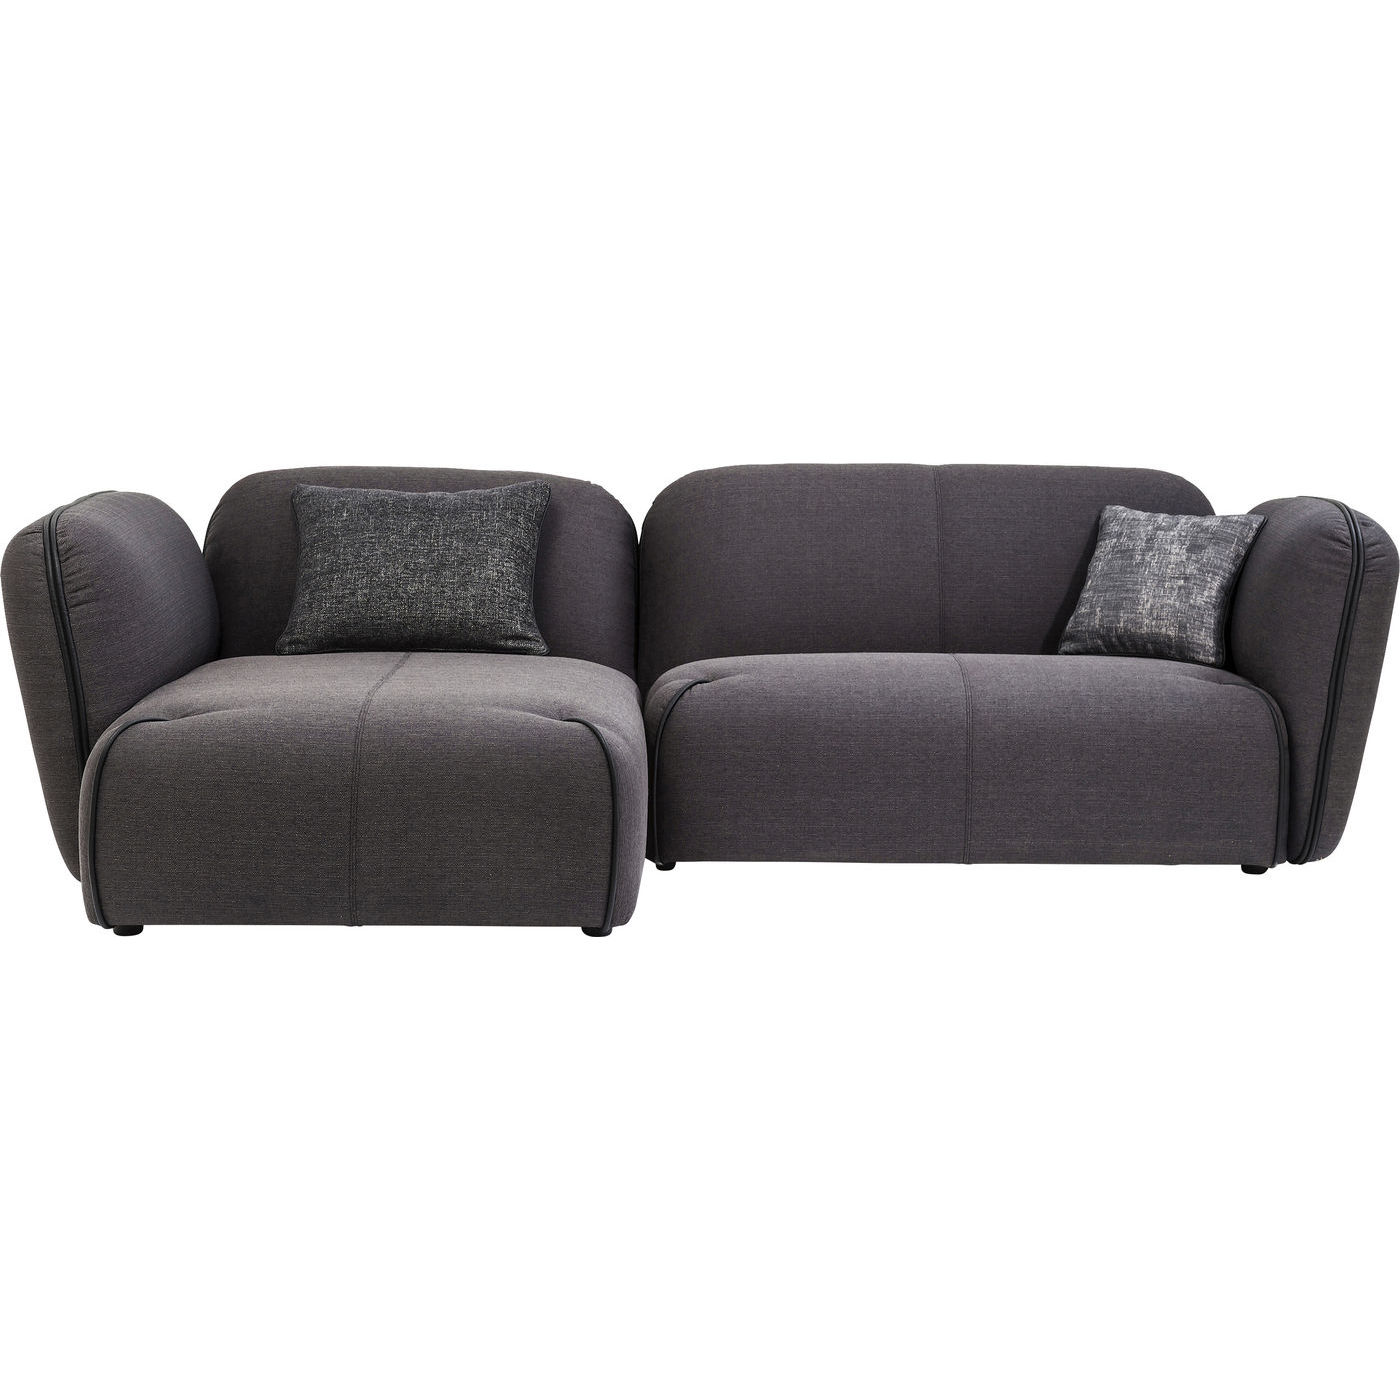 nuvola sofa med fint stof og blde sder komfortabel. Black Bedroom Furniture Sets. Home Design Ideas